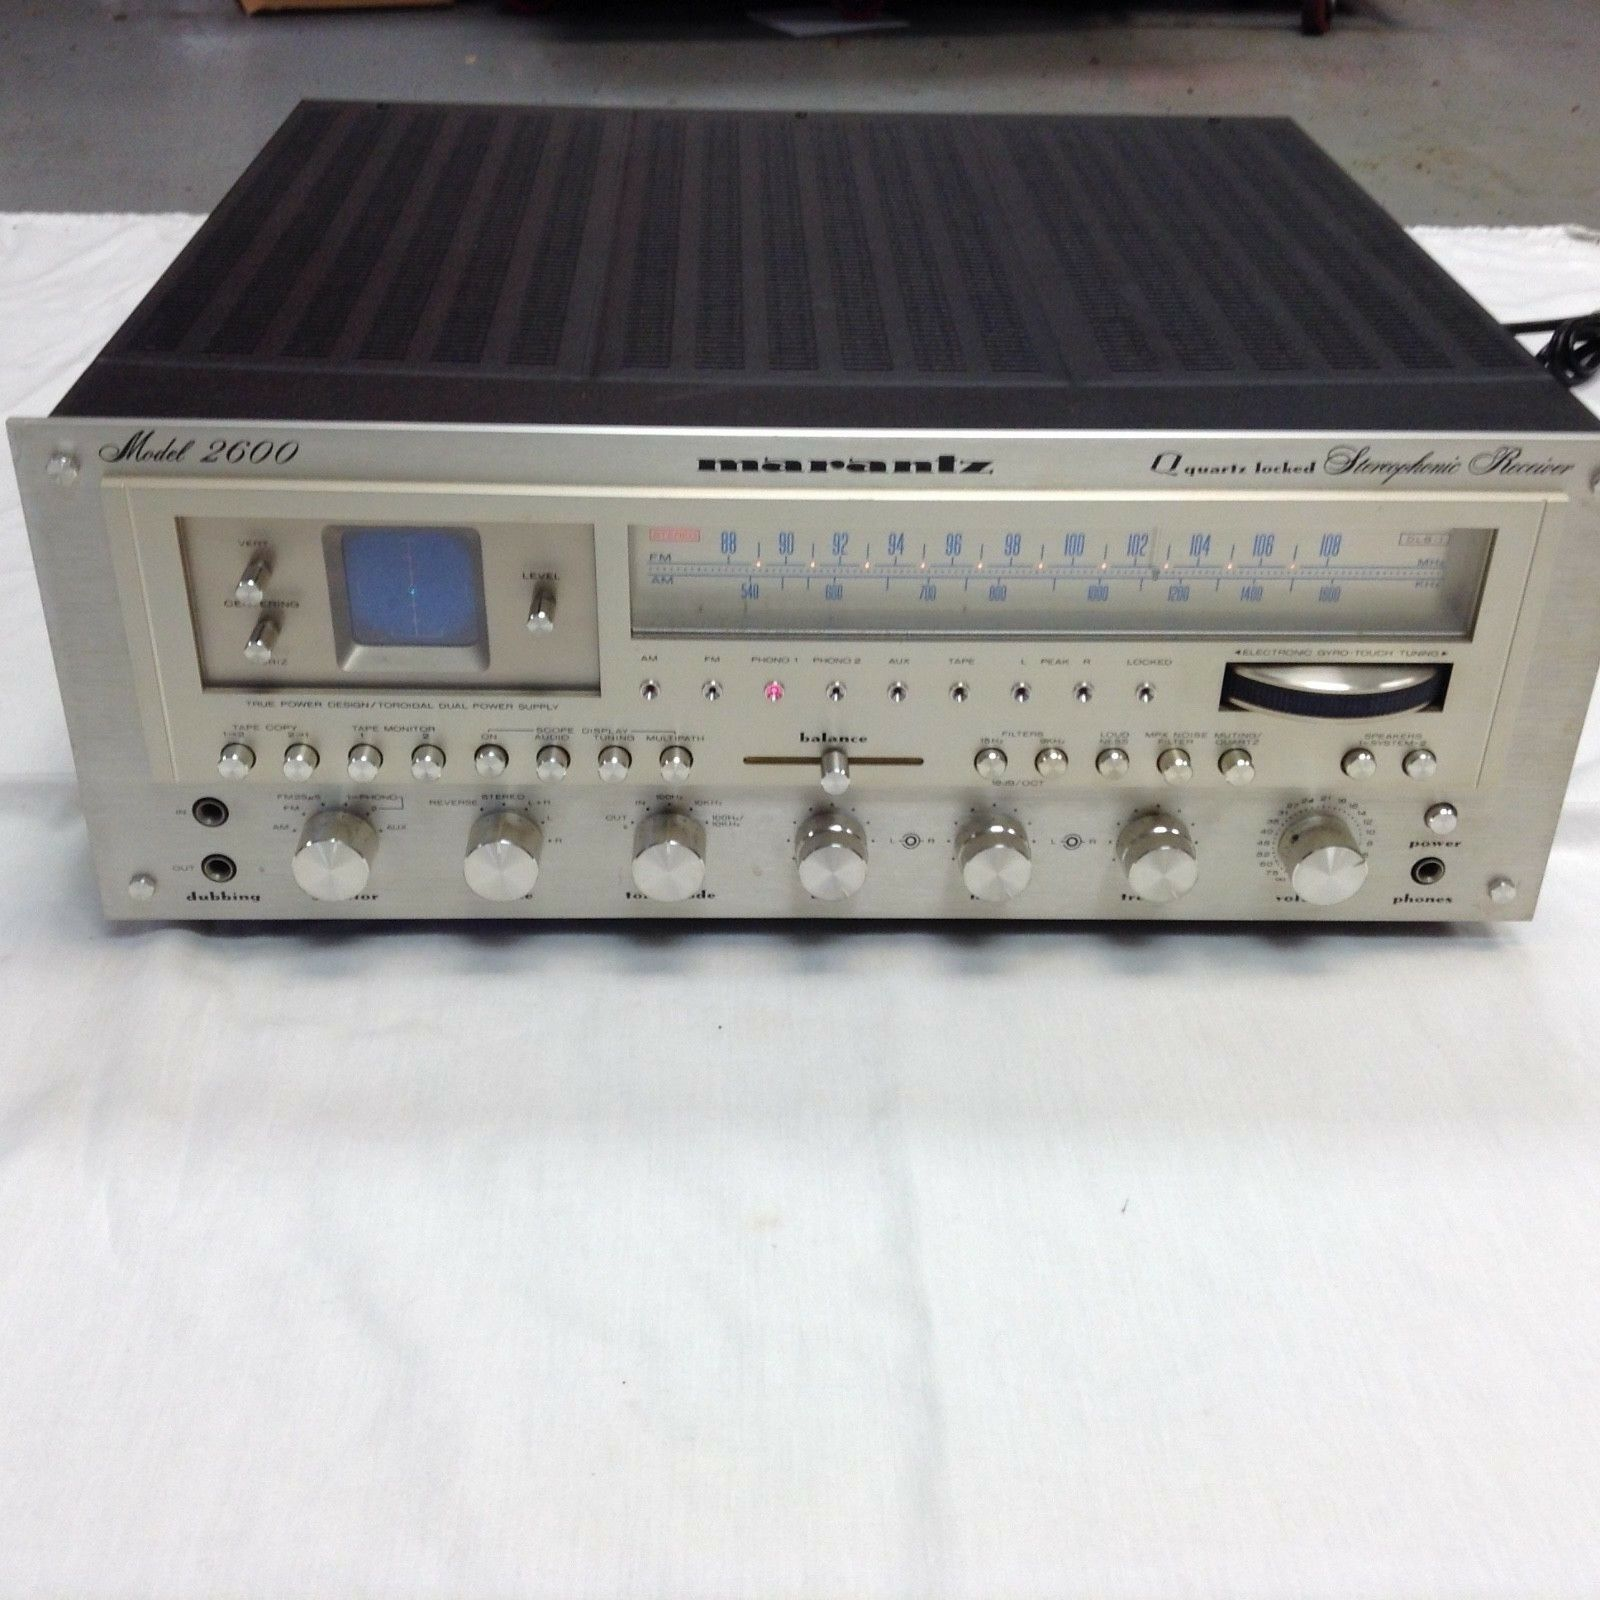 Marantz 2600 on eBay.